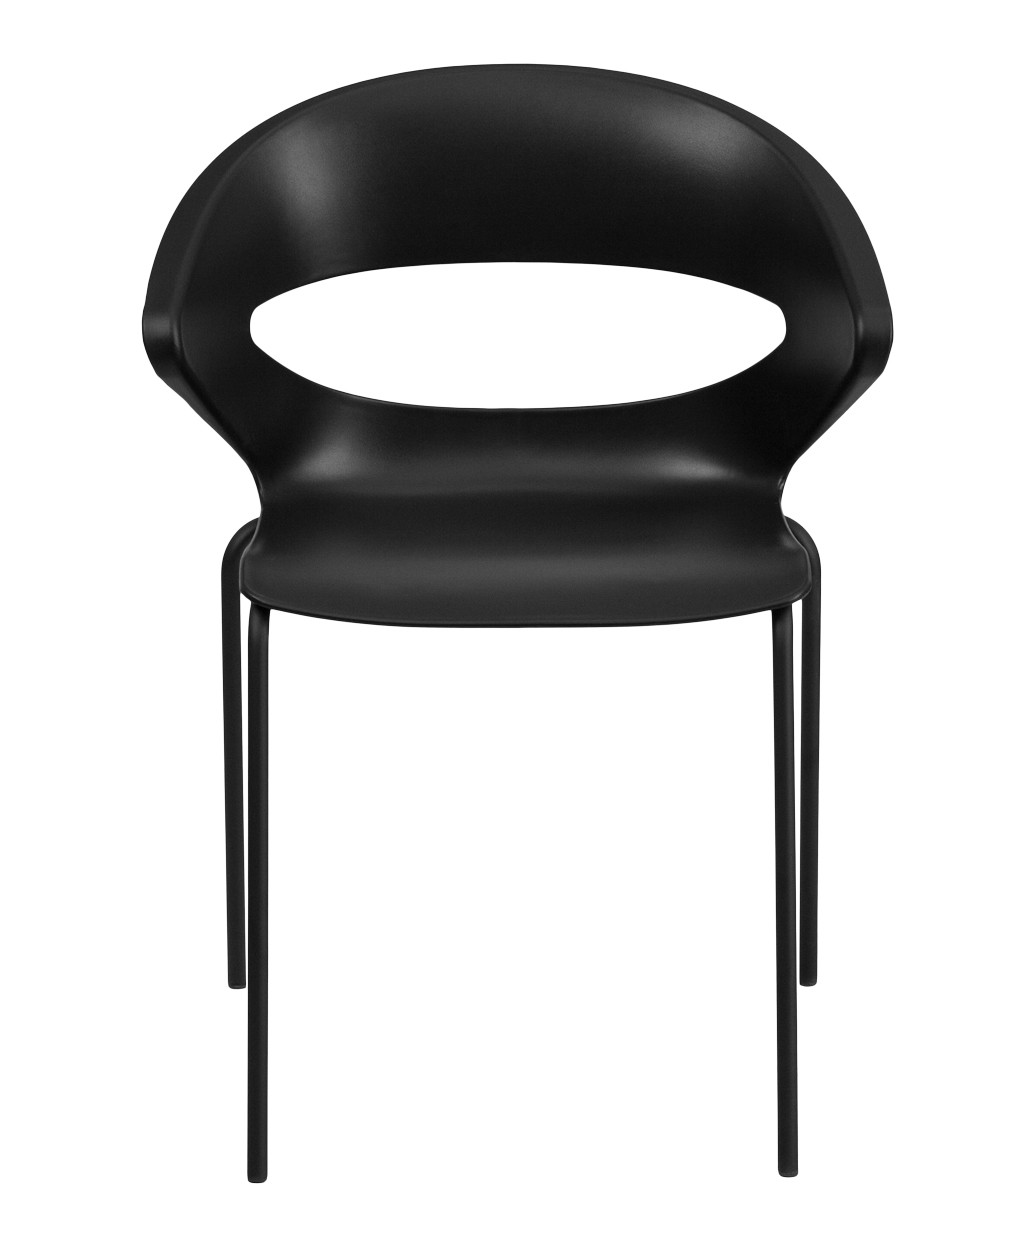 Hercules Round Salon Reception Chair